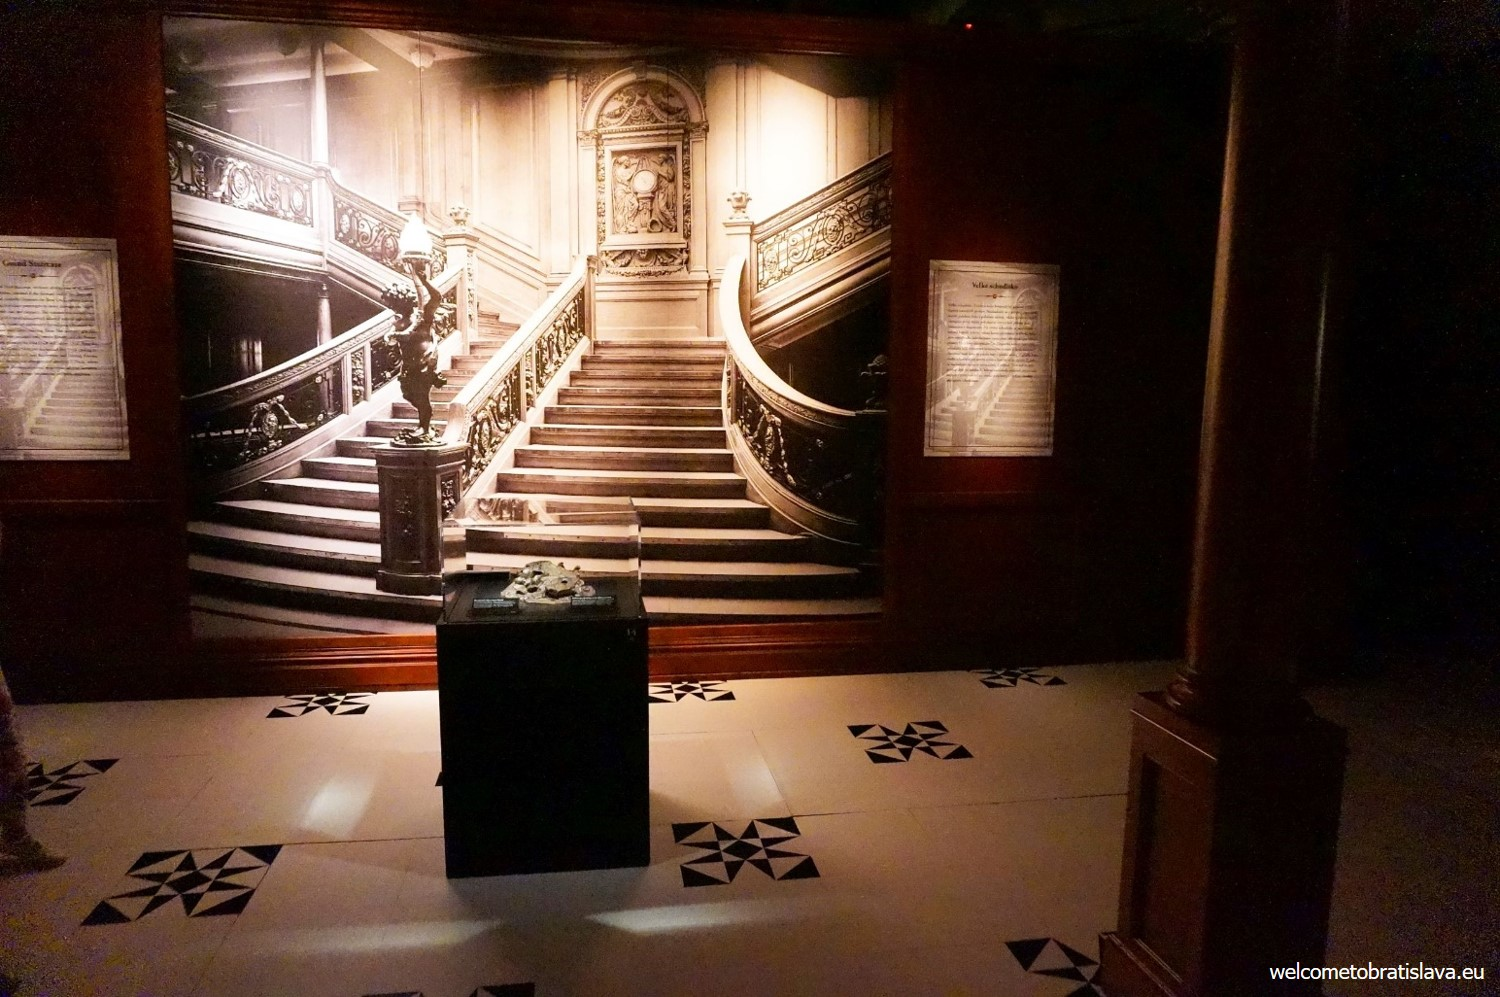 The Grand Staircase of Titanic